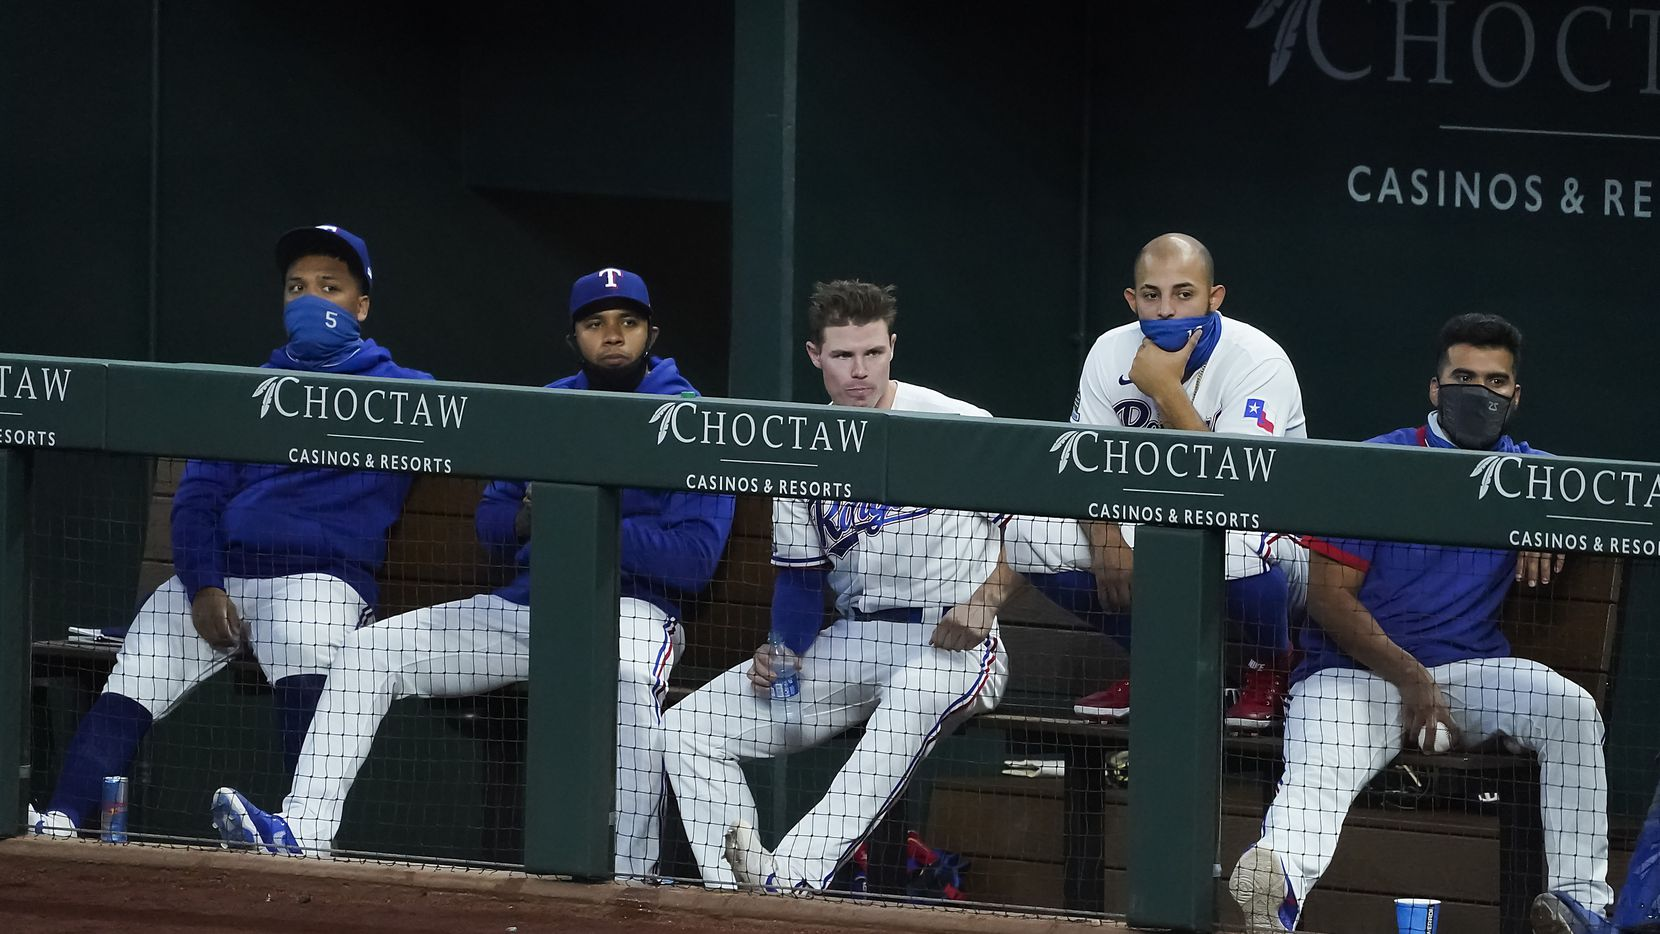 Texas Rangers players (from left) Willie Calhoun, Elvis Andrus, Scott Heineman, Robinson Chirinos and Rougned Odor watch from the dugout during the second inning against the San Diego Padres at Globe Life Field on Tuesday, Aug. 18, 2020.